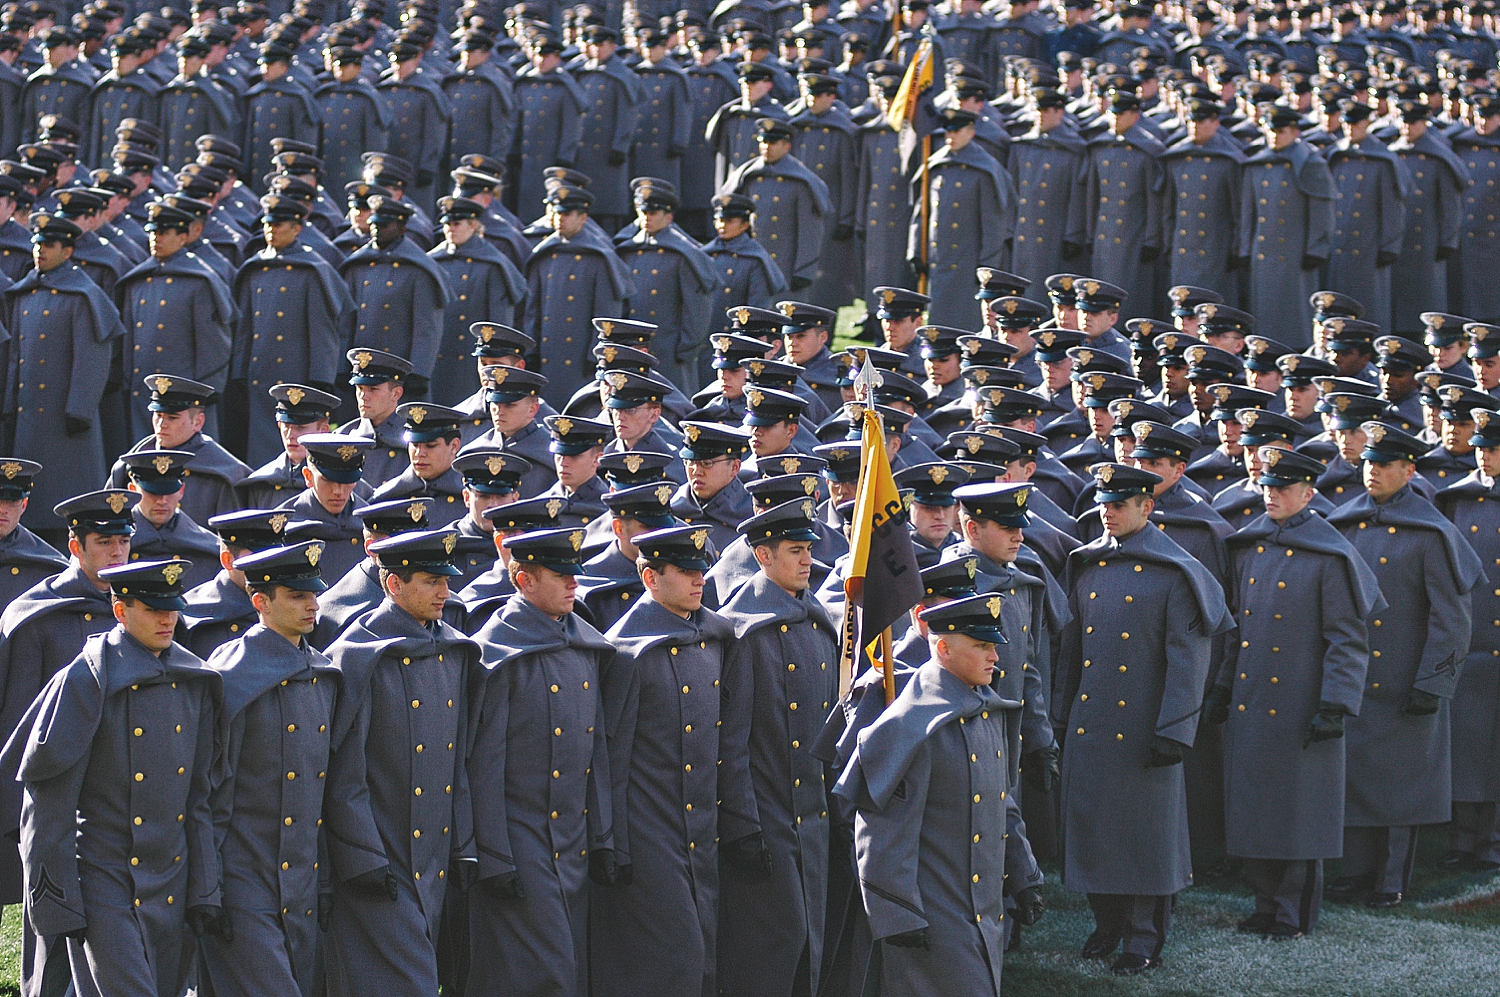 5-army-cadets-in-perfect-formation.jpg